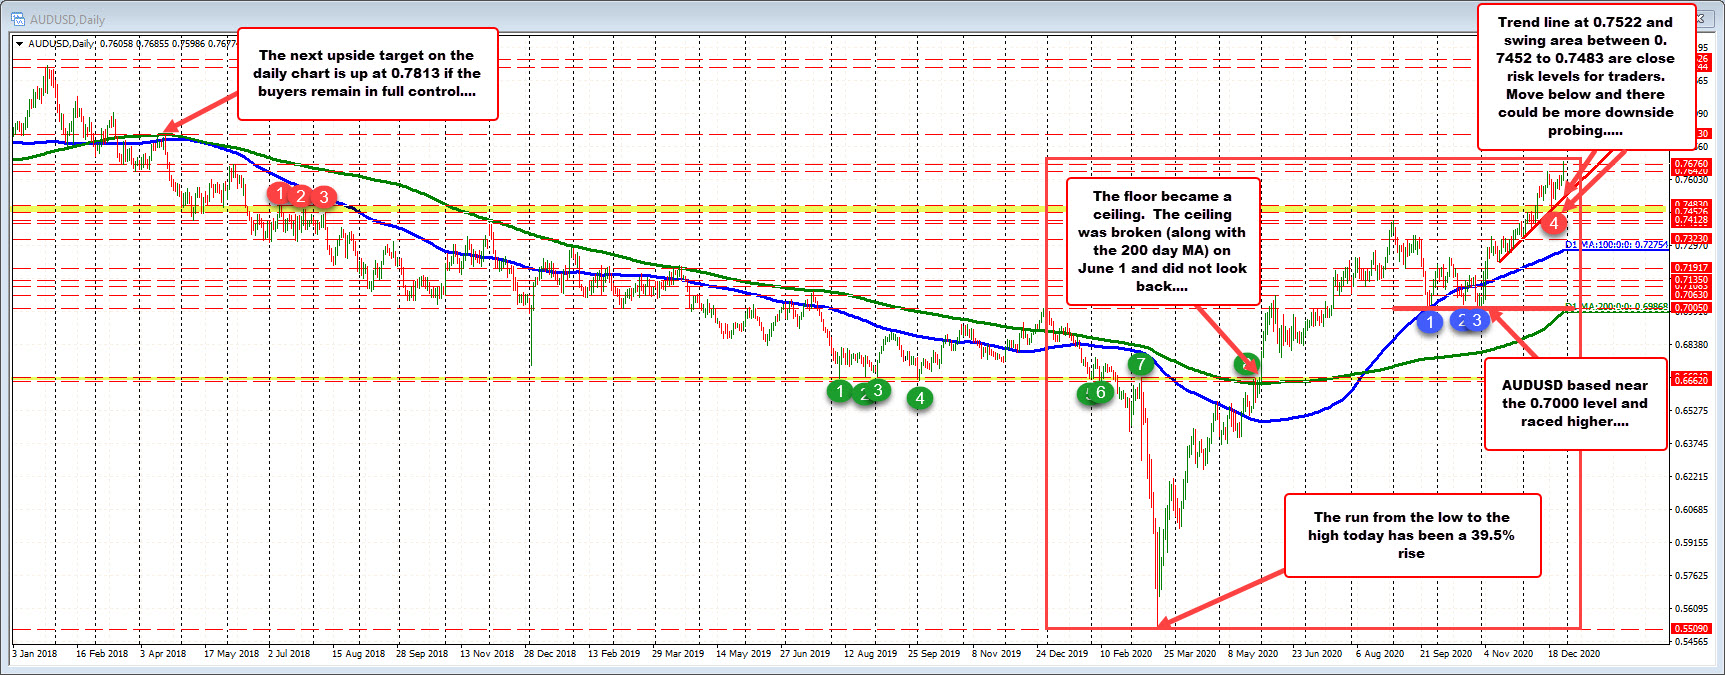 AUDUSD on the daily chart